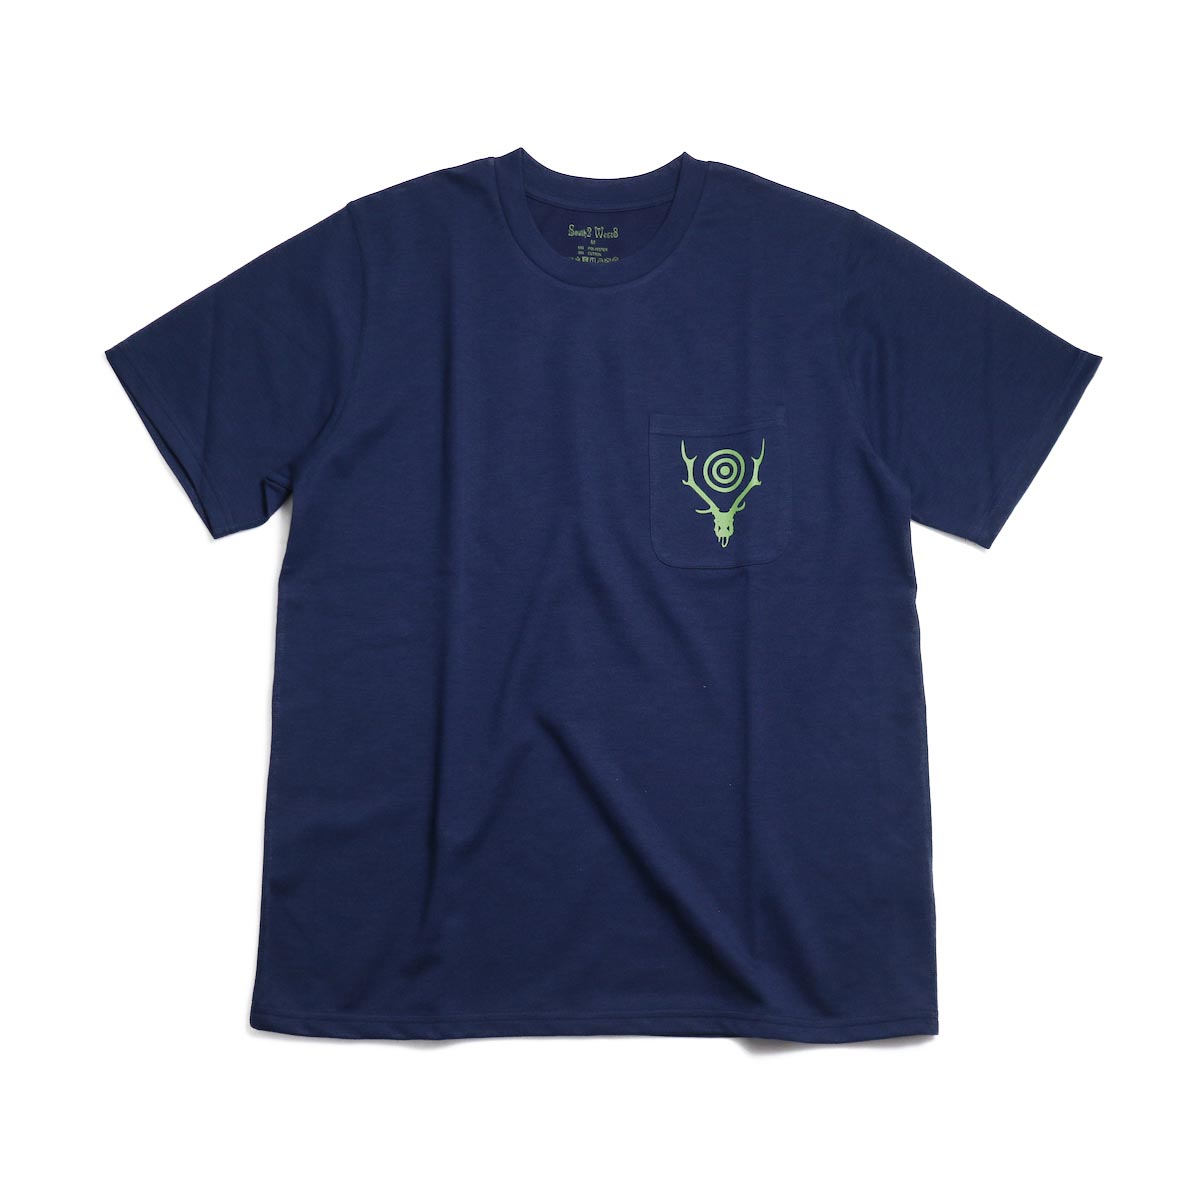 SOUTH2 WEST8 / Round Pocket Tee (Circle Horn) -Navy